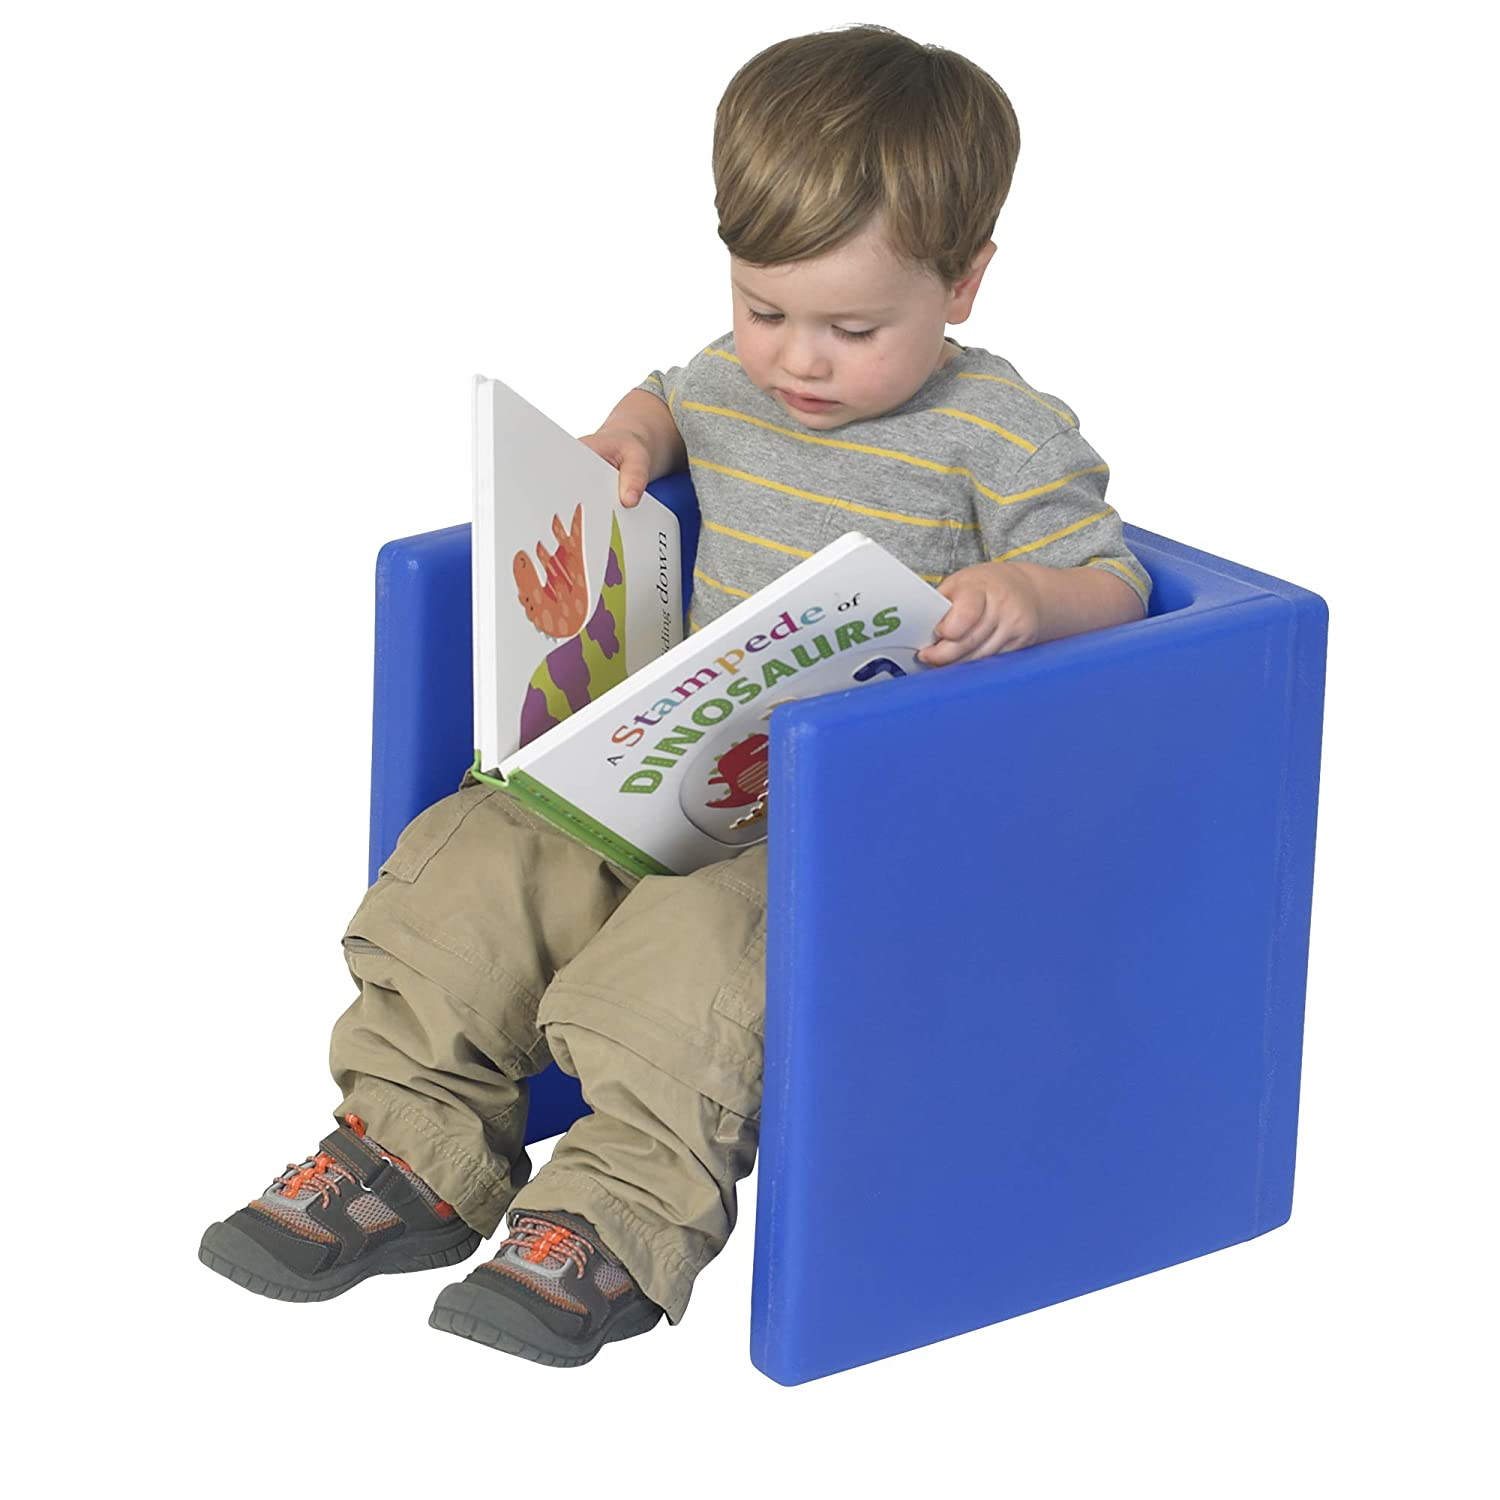 Children's Factory Cube Chair for Kids, Flexible Seating Classroom Furniture for Daycare/Playroom/Homeschool, Indoor/Outdoor Toddler Chair, Blue